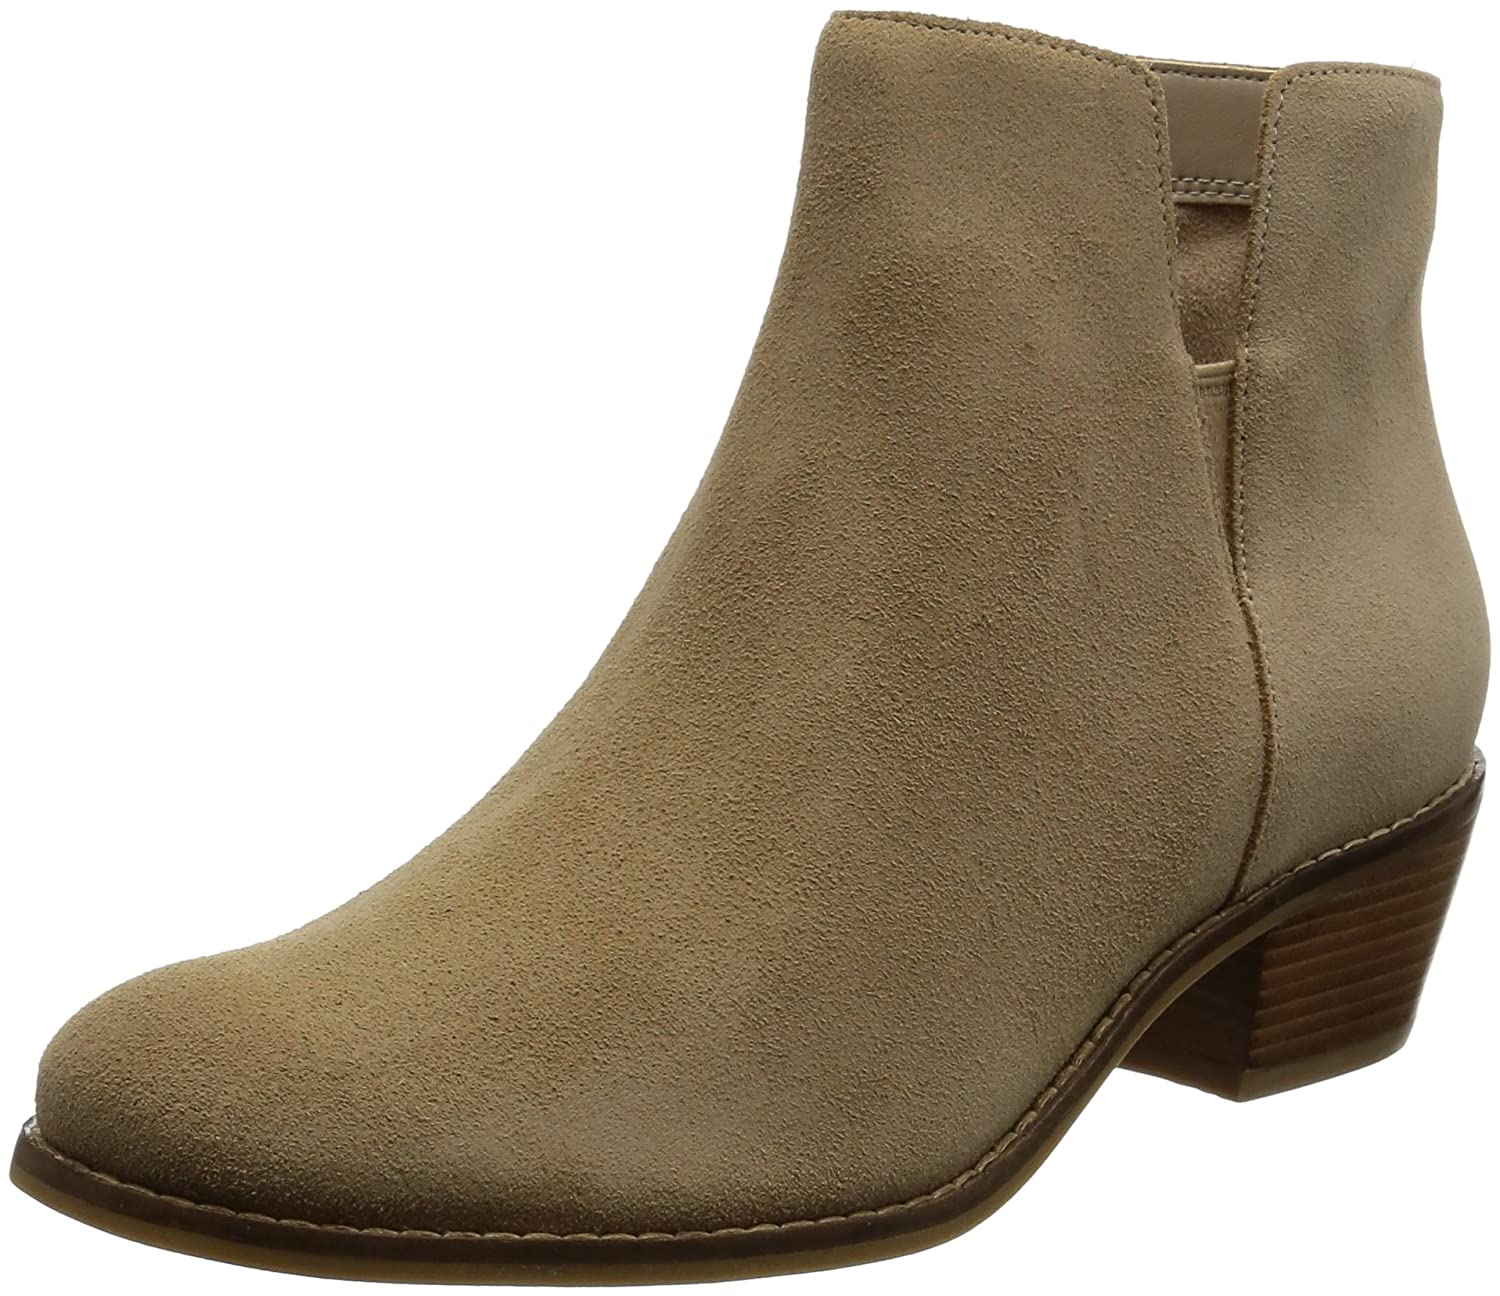 Cole Haan Women's Abbot Ankle Boot B00QRLFE52 6 B(M) US|Cremini Suede